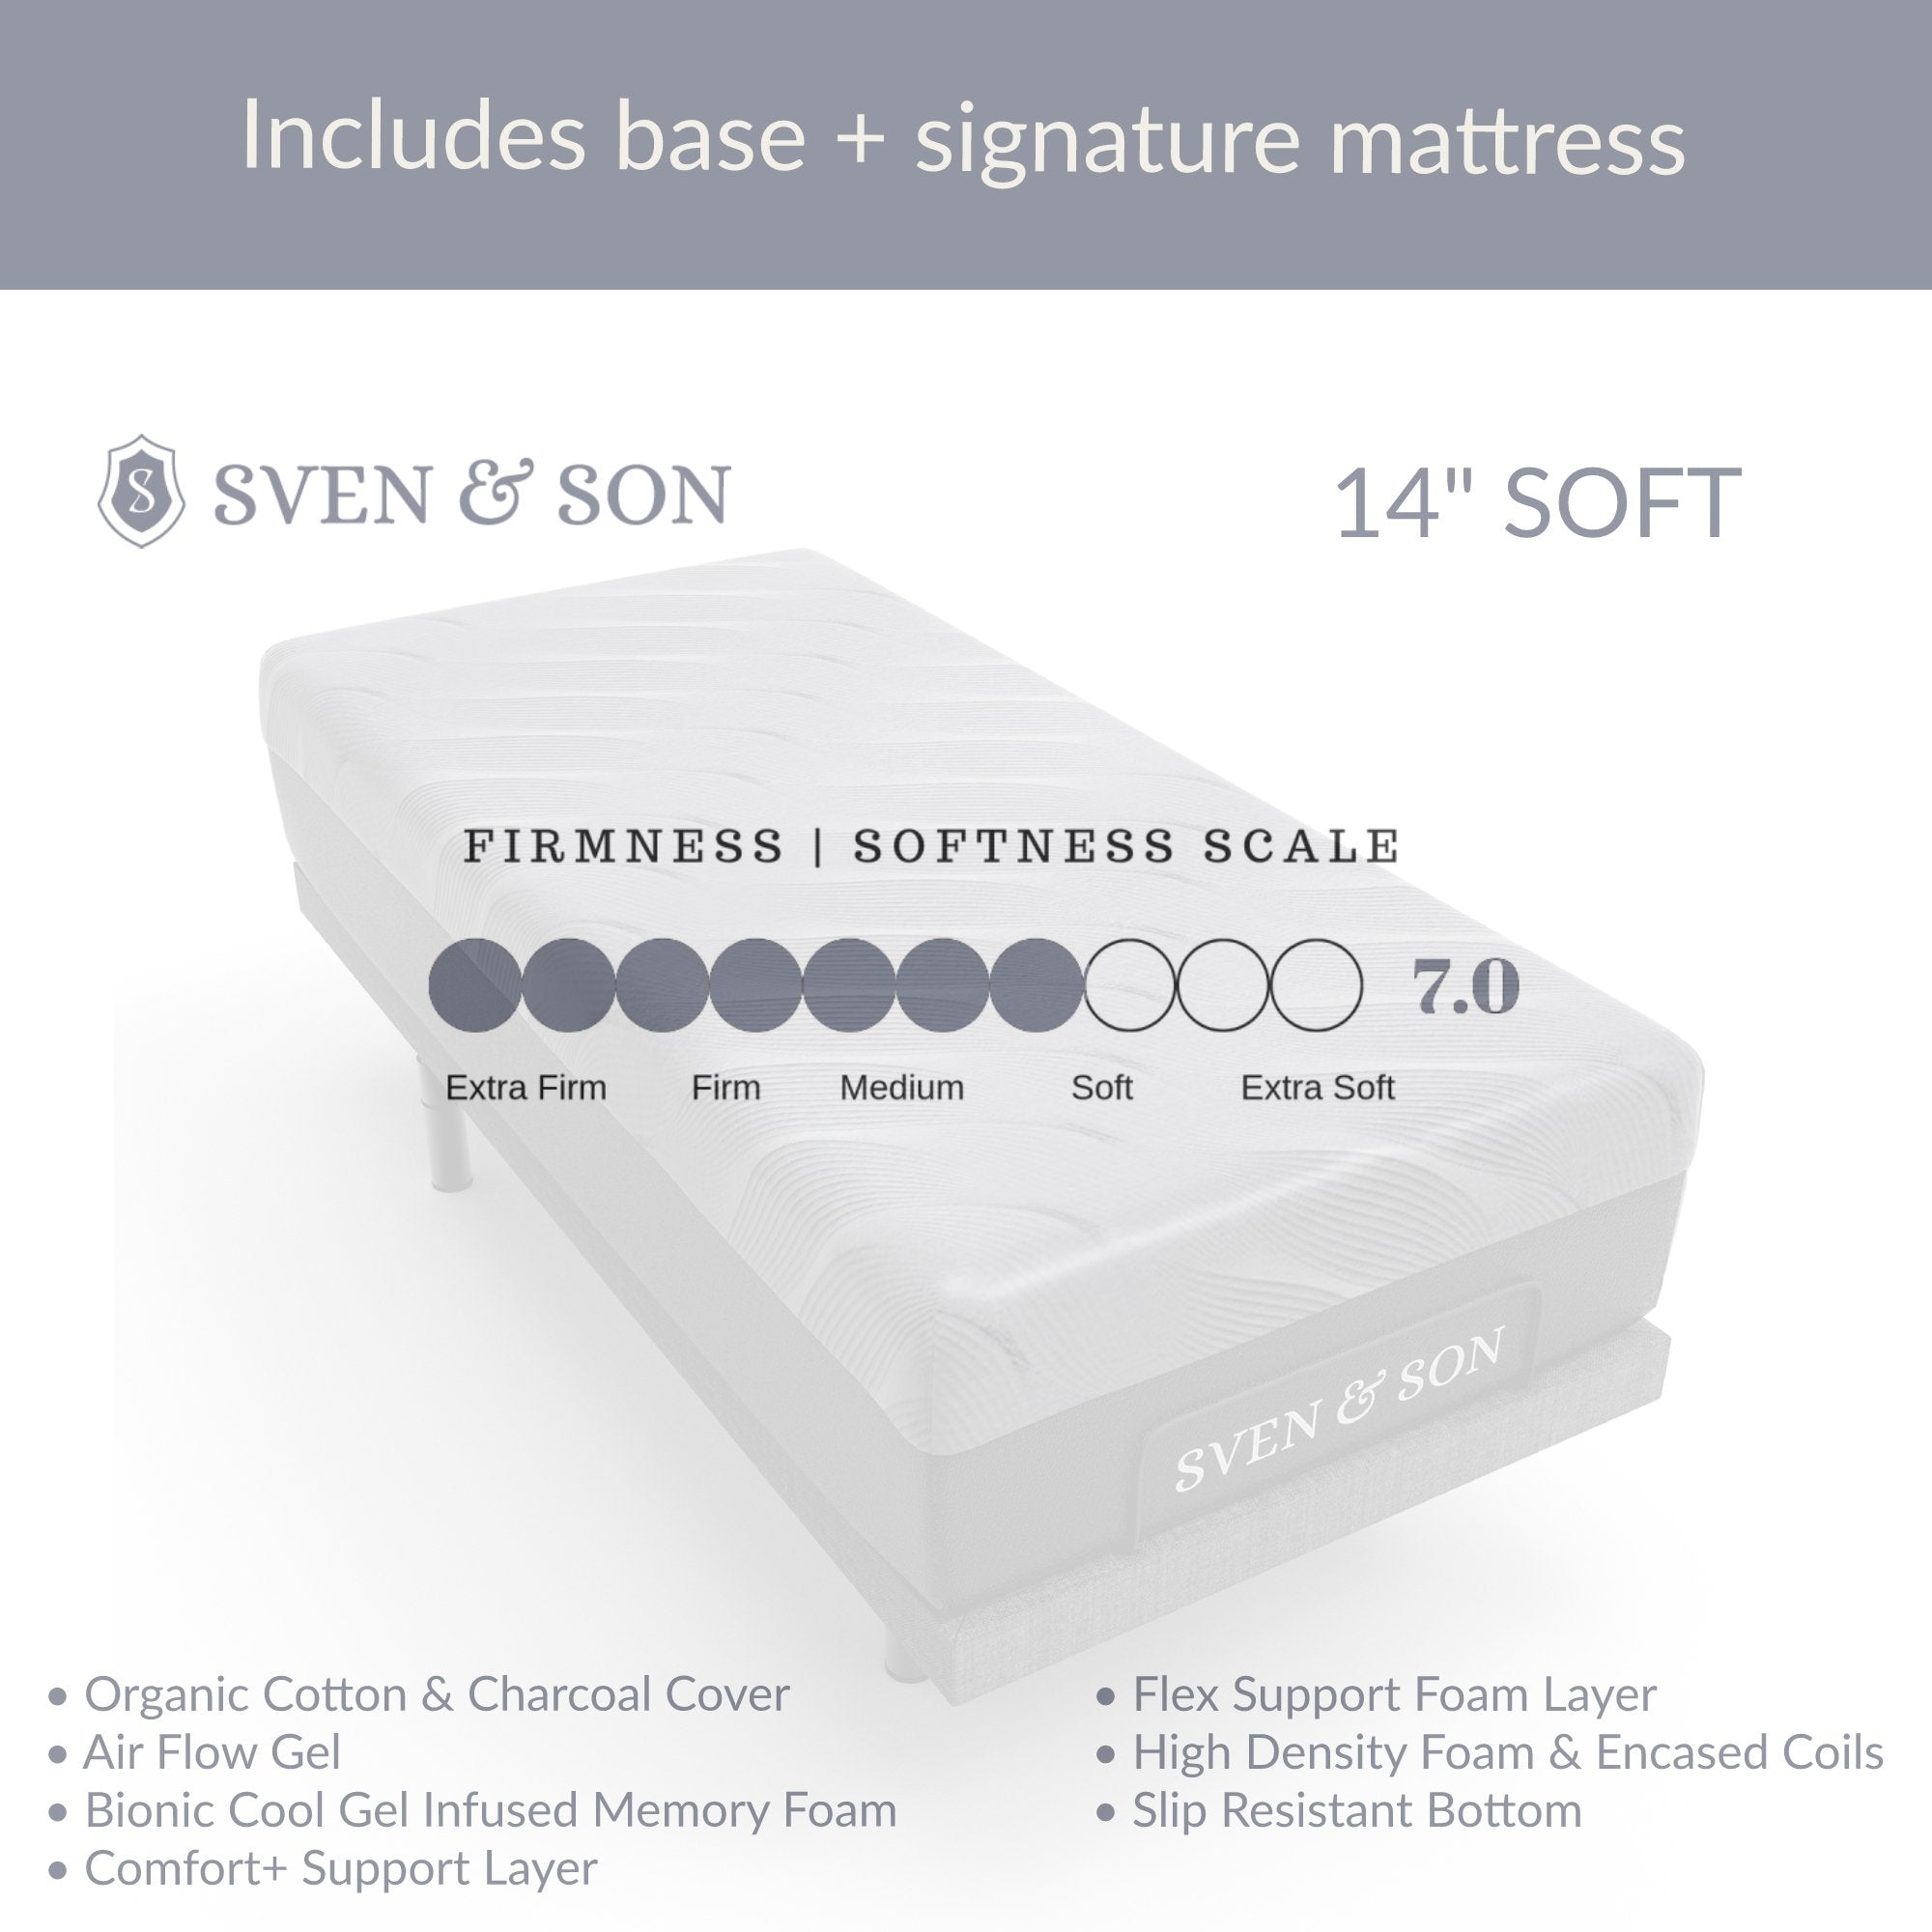 Bliss Adjustable Base + Mattress Bundle bundle Sven & Son